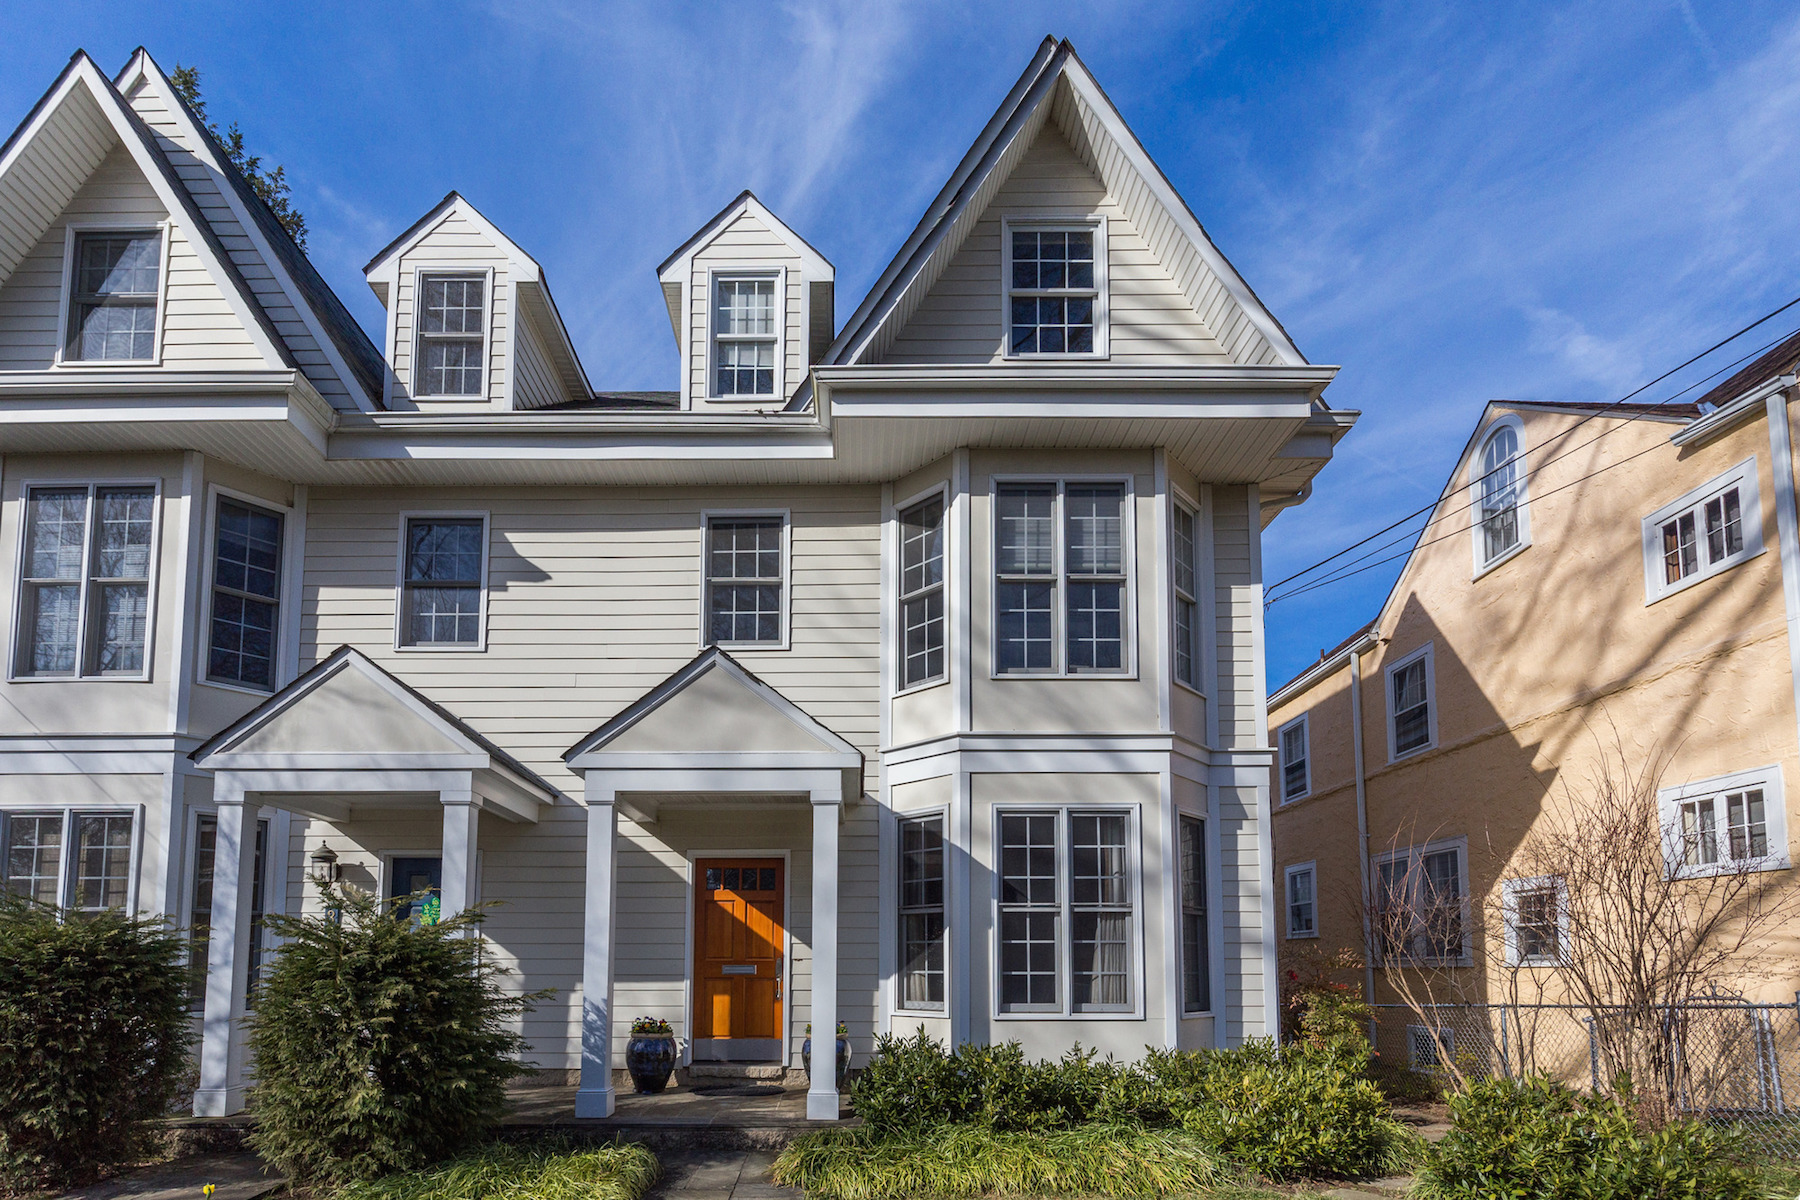 Townhouse for Sale at 3823 Fulton Street Nw, Washington Washington, District Of Columbia 20007 United States